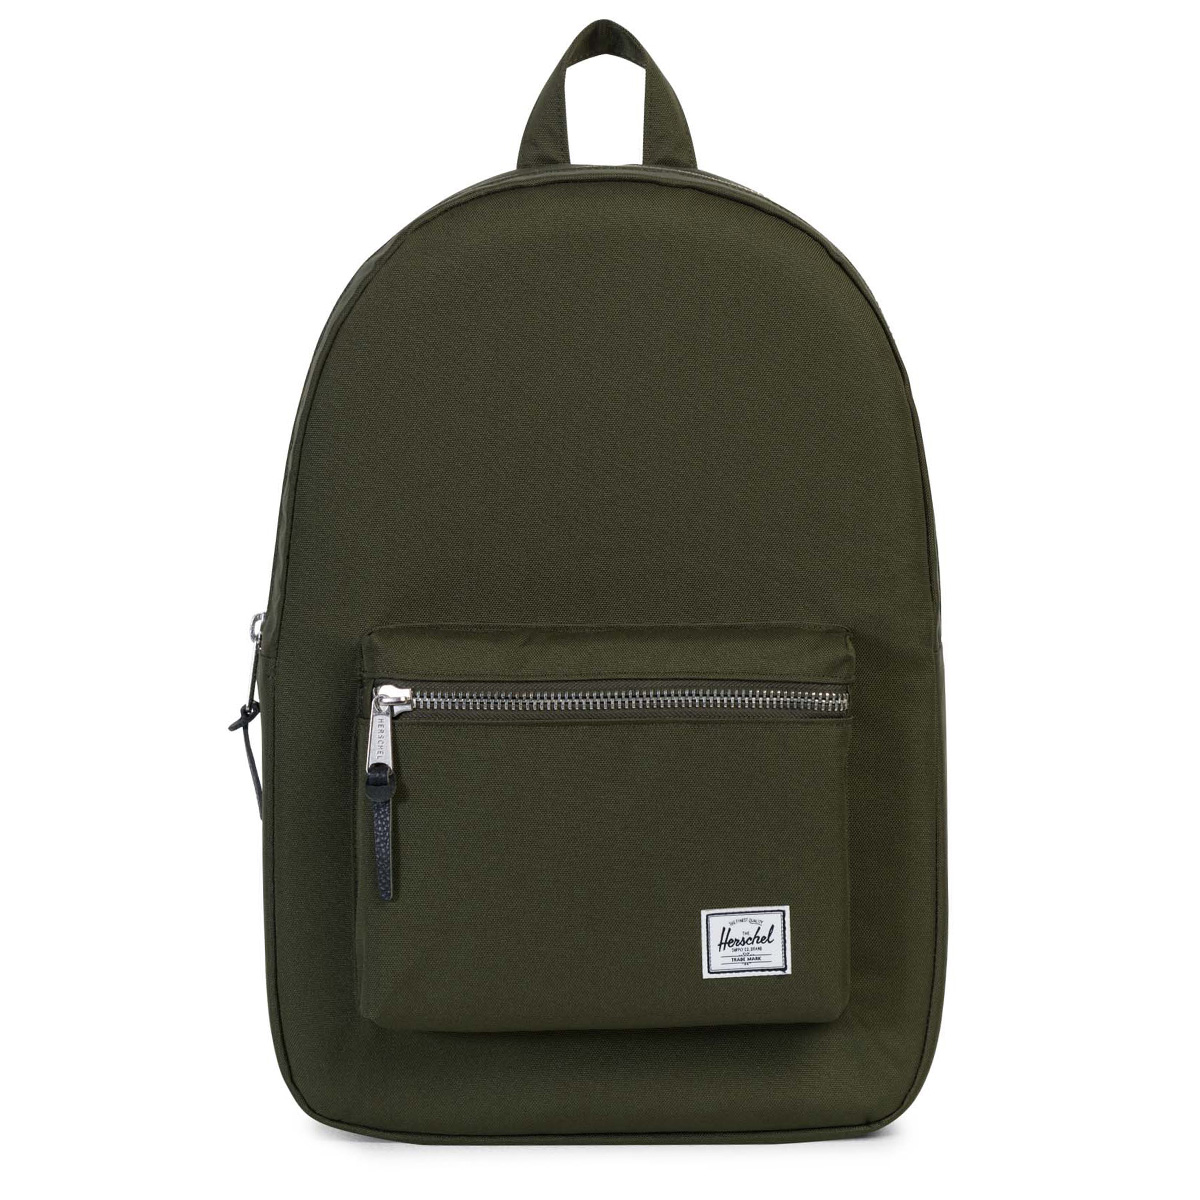 Gym Bag Herschel: Herschel Supply Co. Green Settlement Backpack Unisex